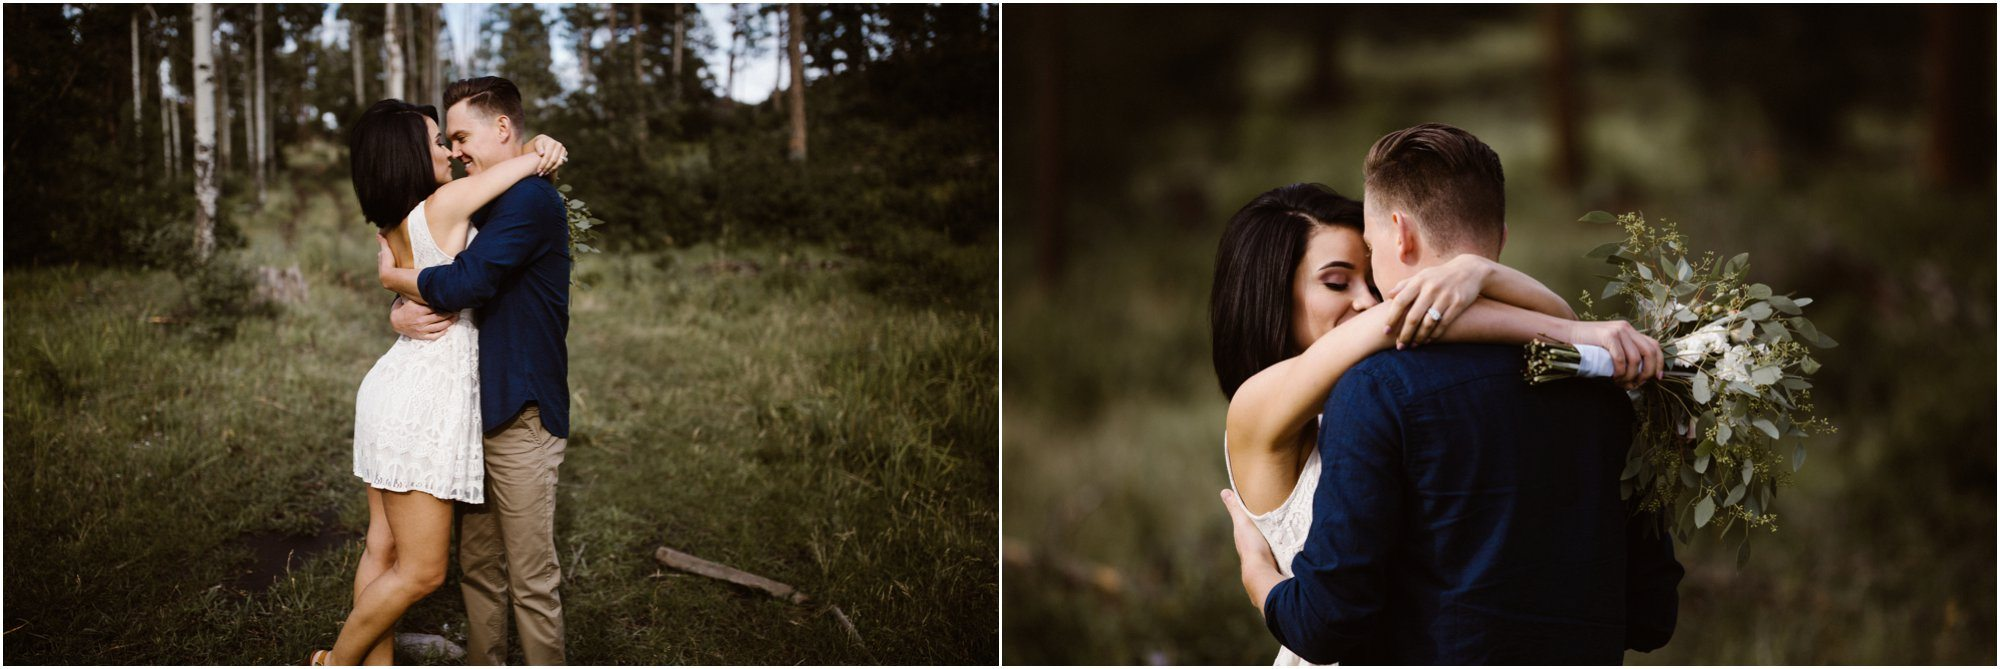 042Blue Rose Photography_ Albuquerque Engagement Photographer_ Blue Rose Studios_ Anniversary Pictures Santa Fe Photographer